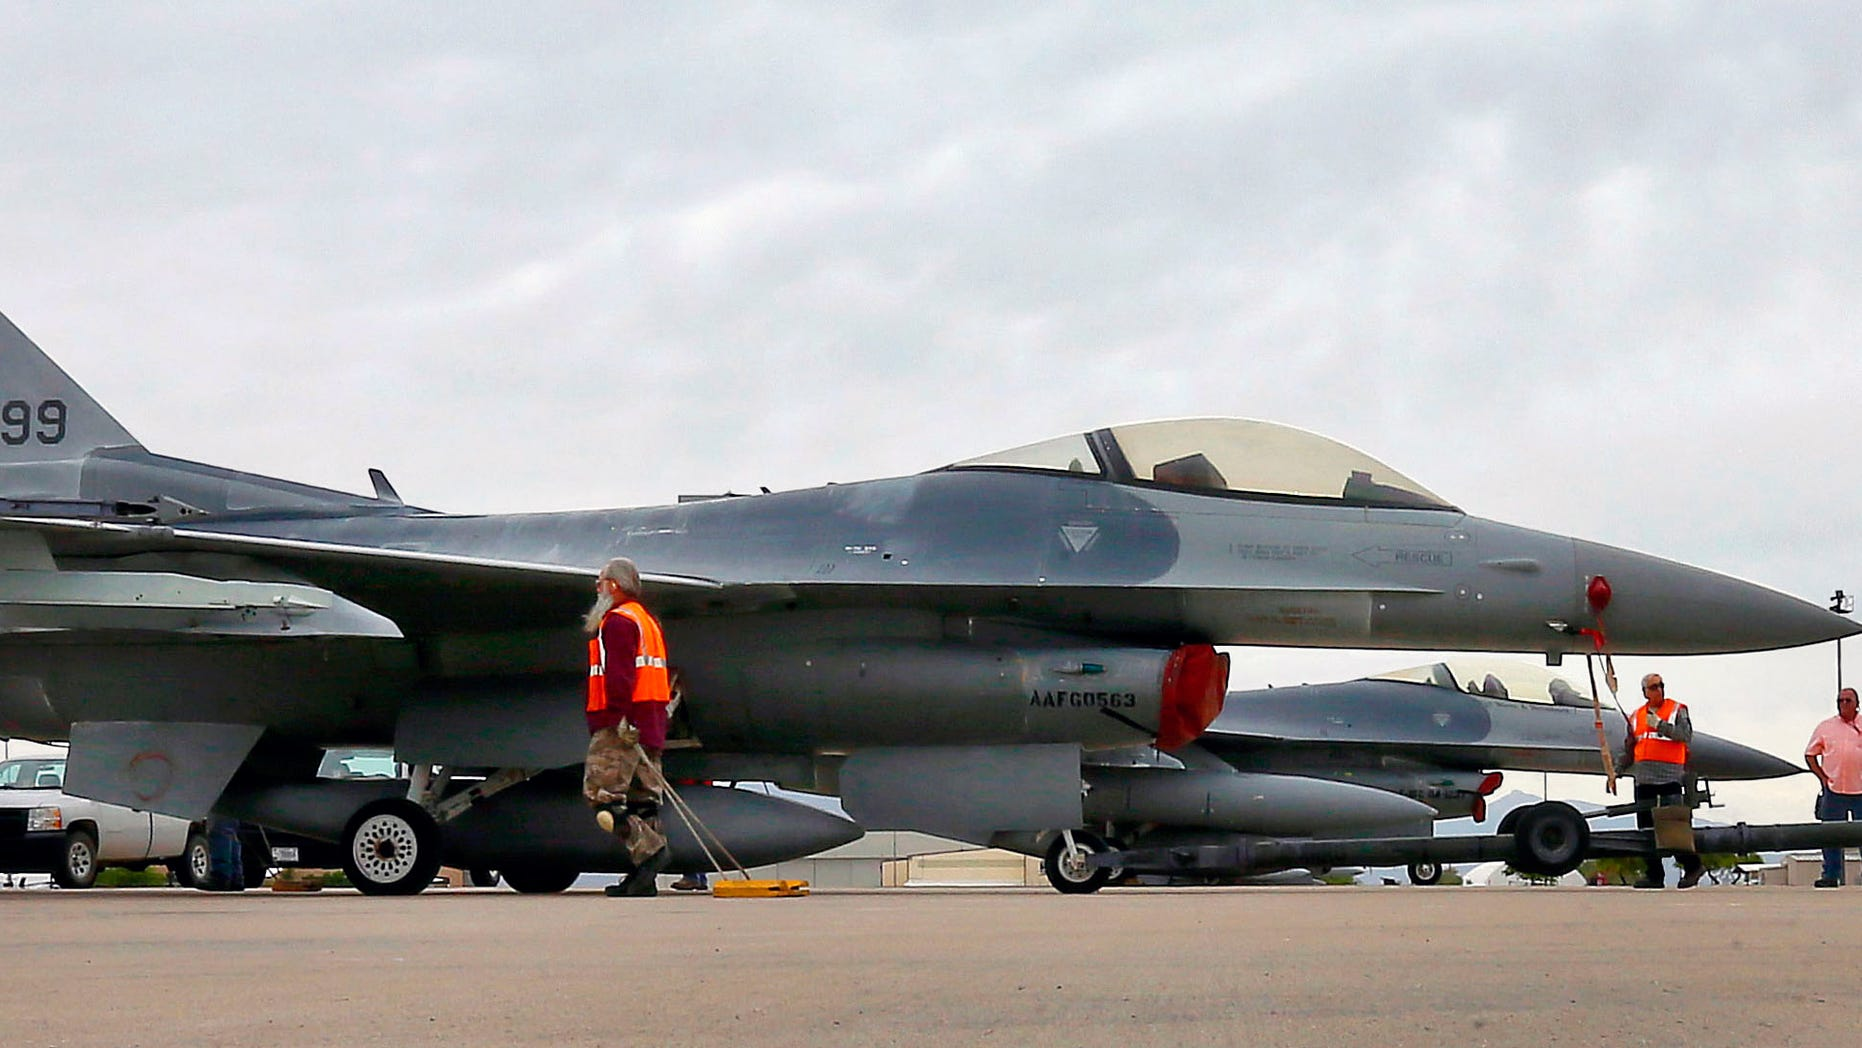 In this May 15, 2015, file photo, a boneyard crew tows an F-16 Fighting Falcon aircraft prior to the preservation process after its arrival at the 309th Aerospace Maintenance and Regeneration Group at Davis-Monthan Air Force Base in Tucson, Ariz. Military officials confirm a single F-16 Fighting Falcon aircraft crashed Wednesday night, June 24, 2015, about 5 miles east of Douglas Municipal Airport.